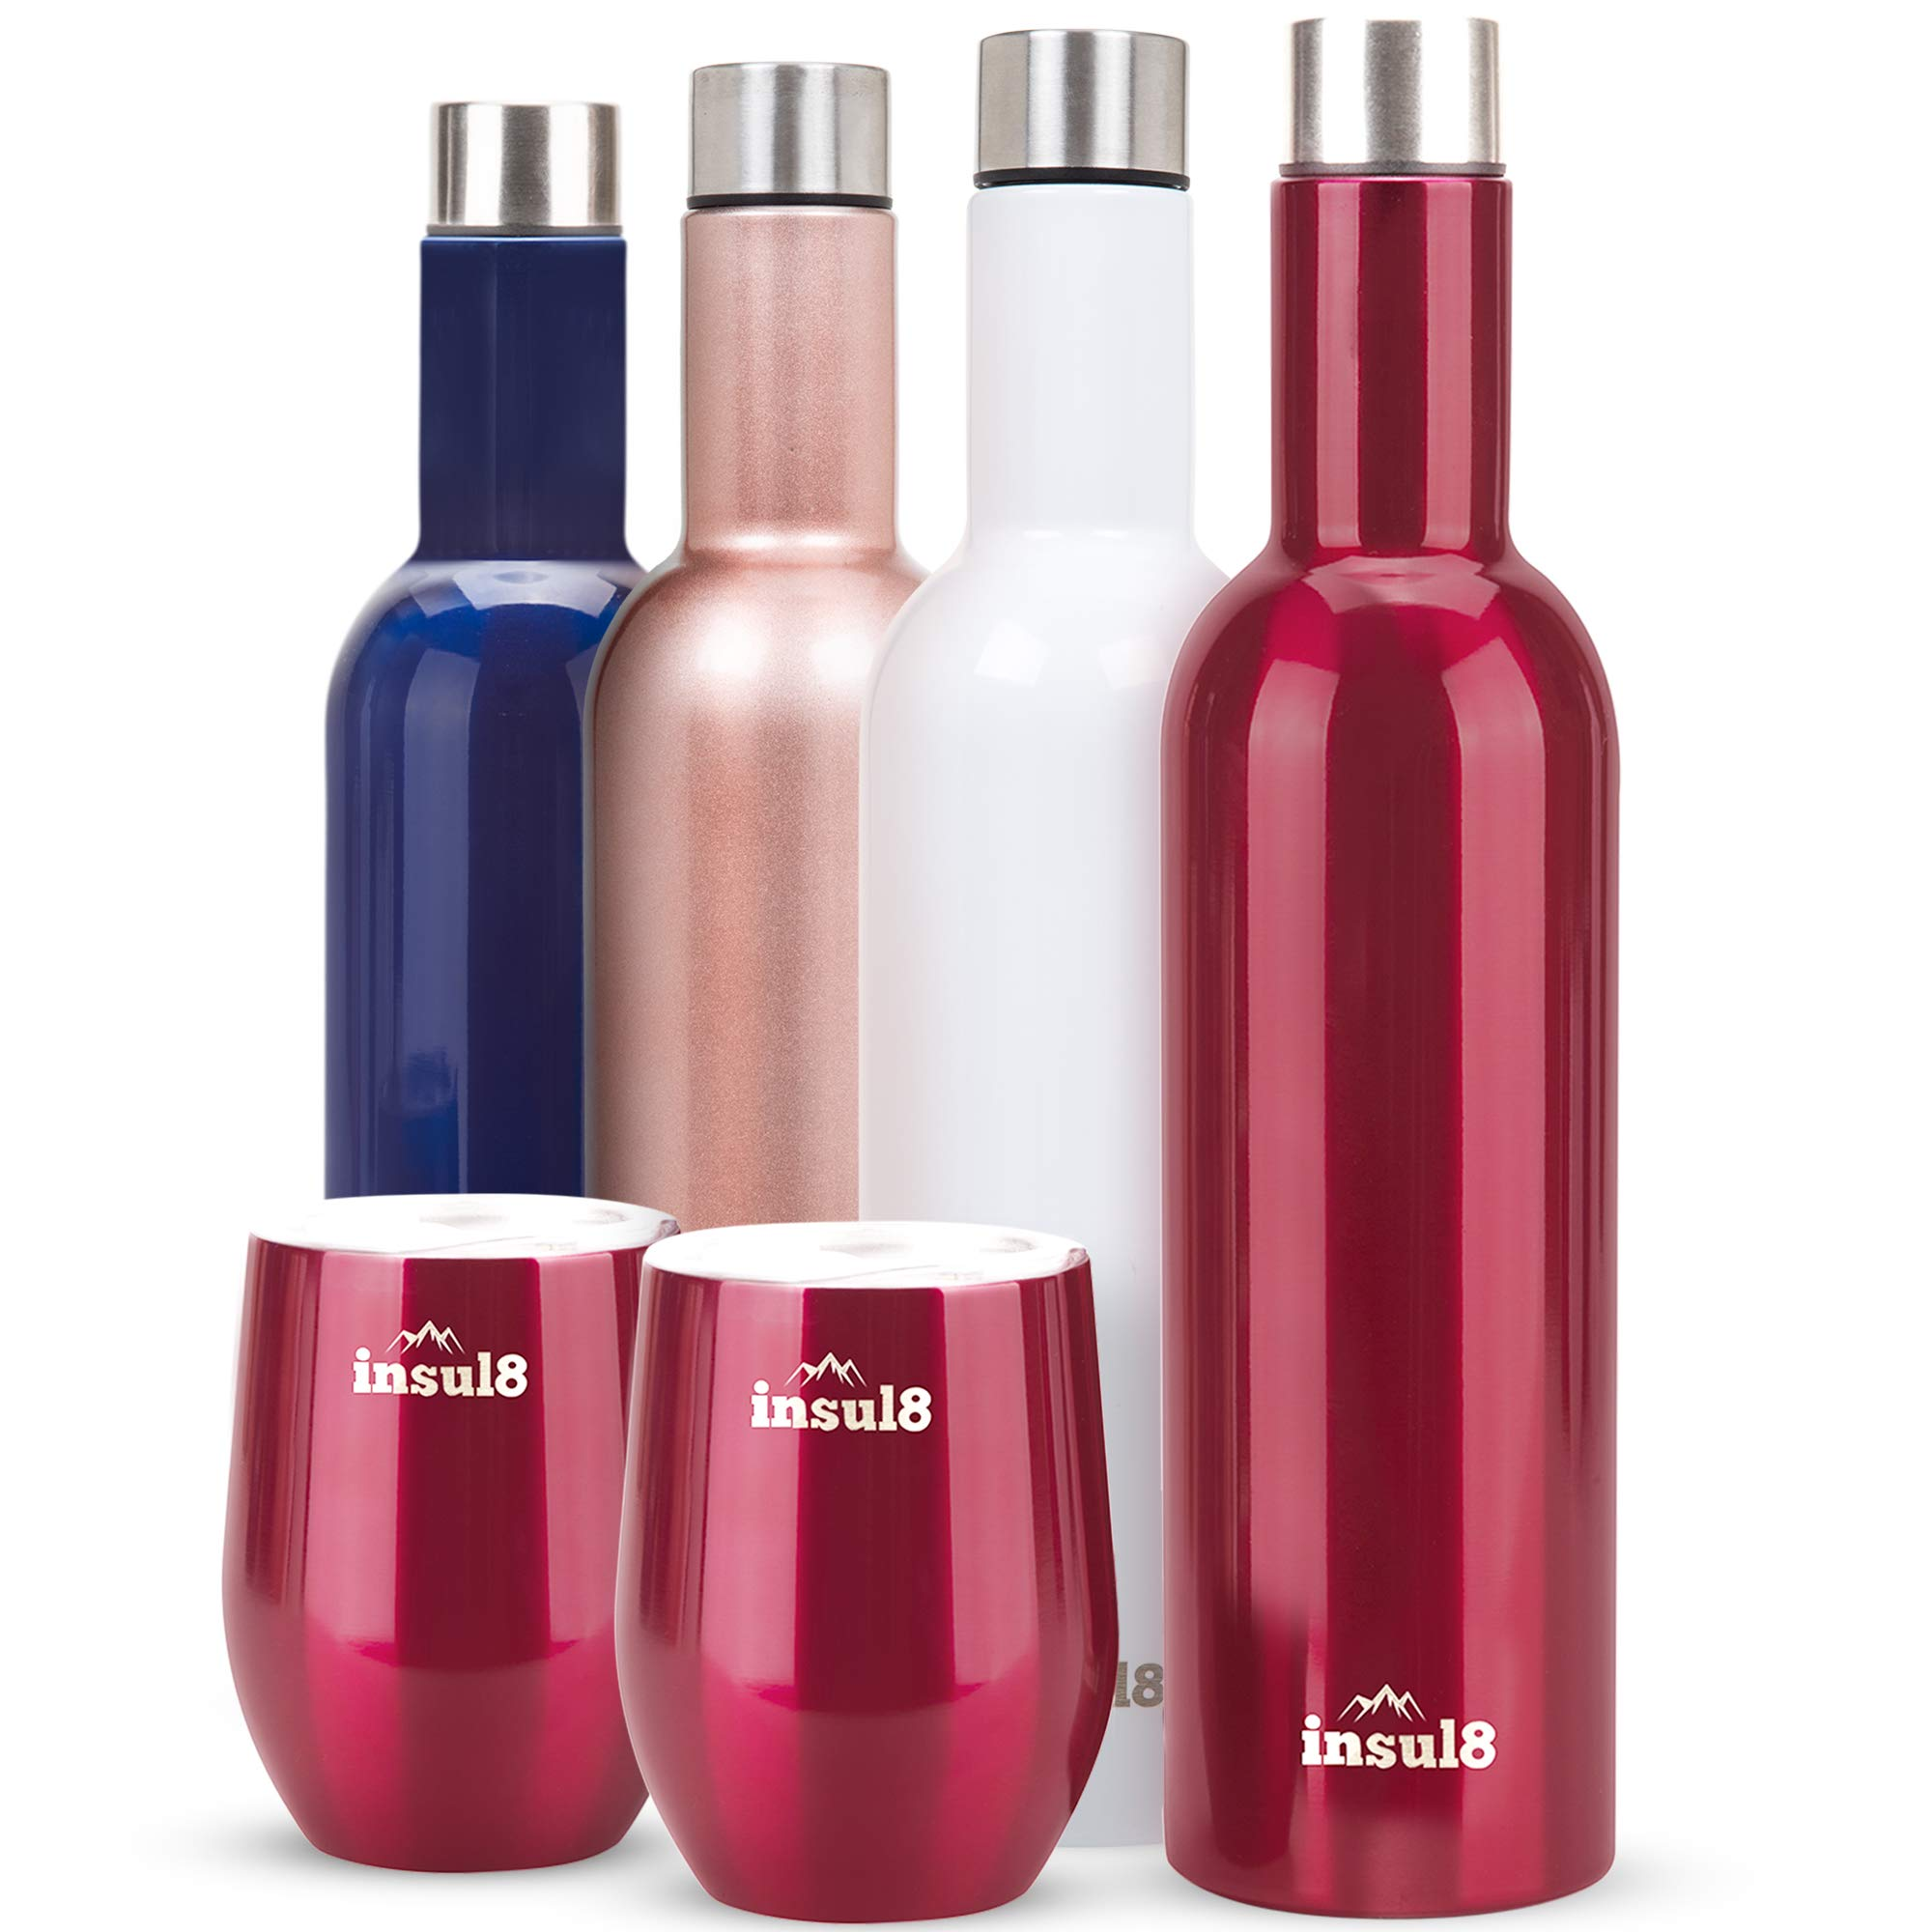 Stainless Steel Vacuum Insulated and Double Walled 25 ounce Wine Bottle and 2 12 ounce Wine Tumbler Cups Metallic Red Set by insul8 (Image #1)